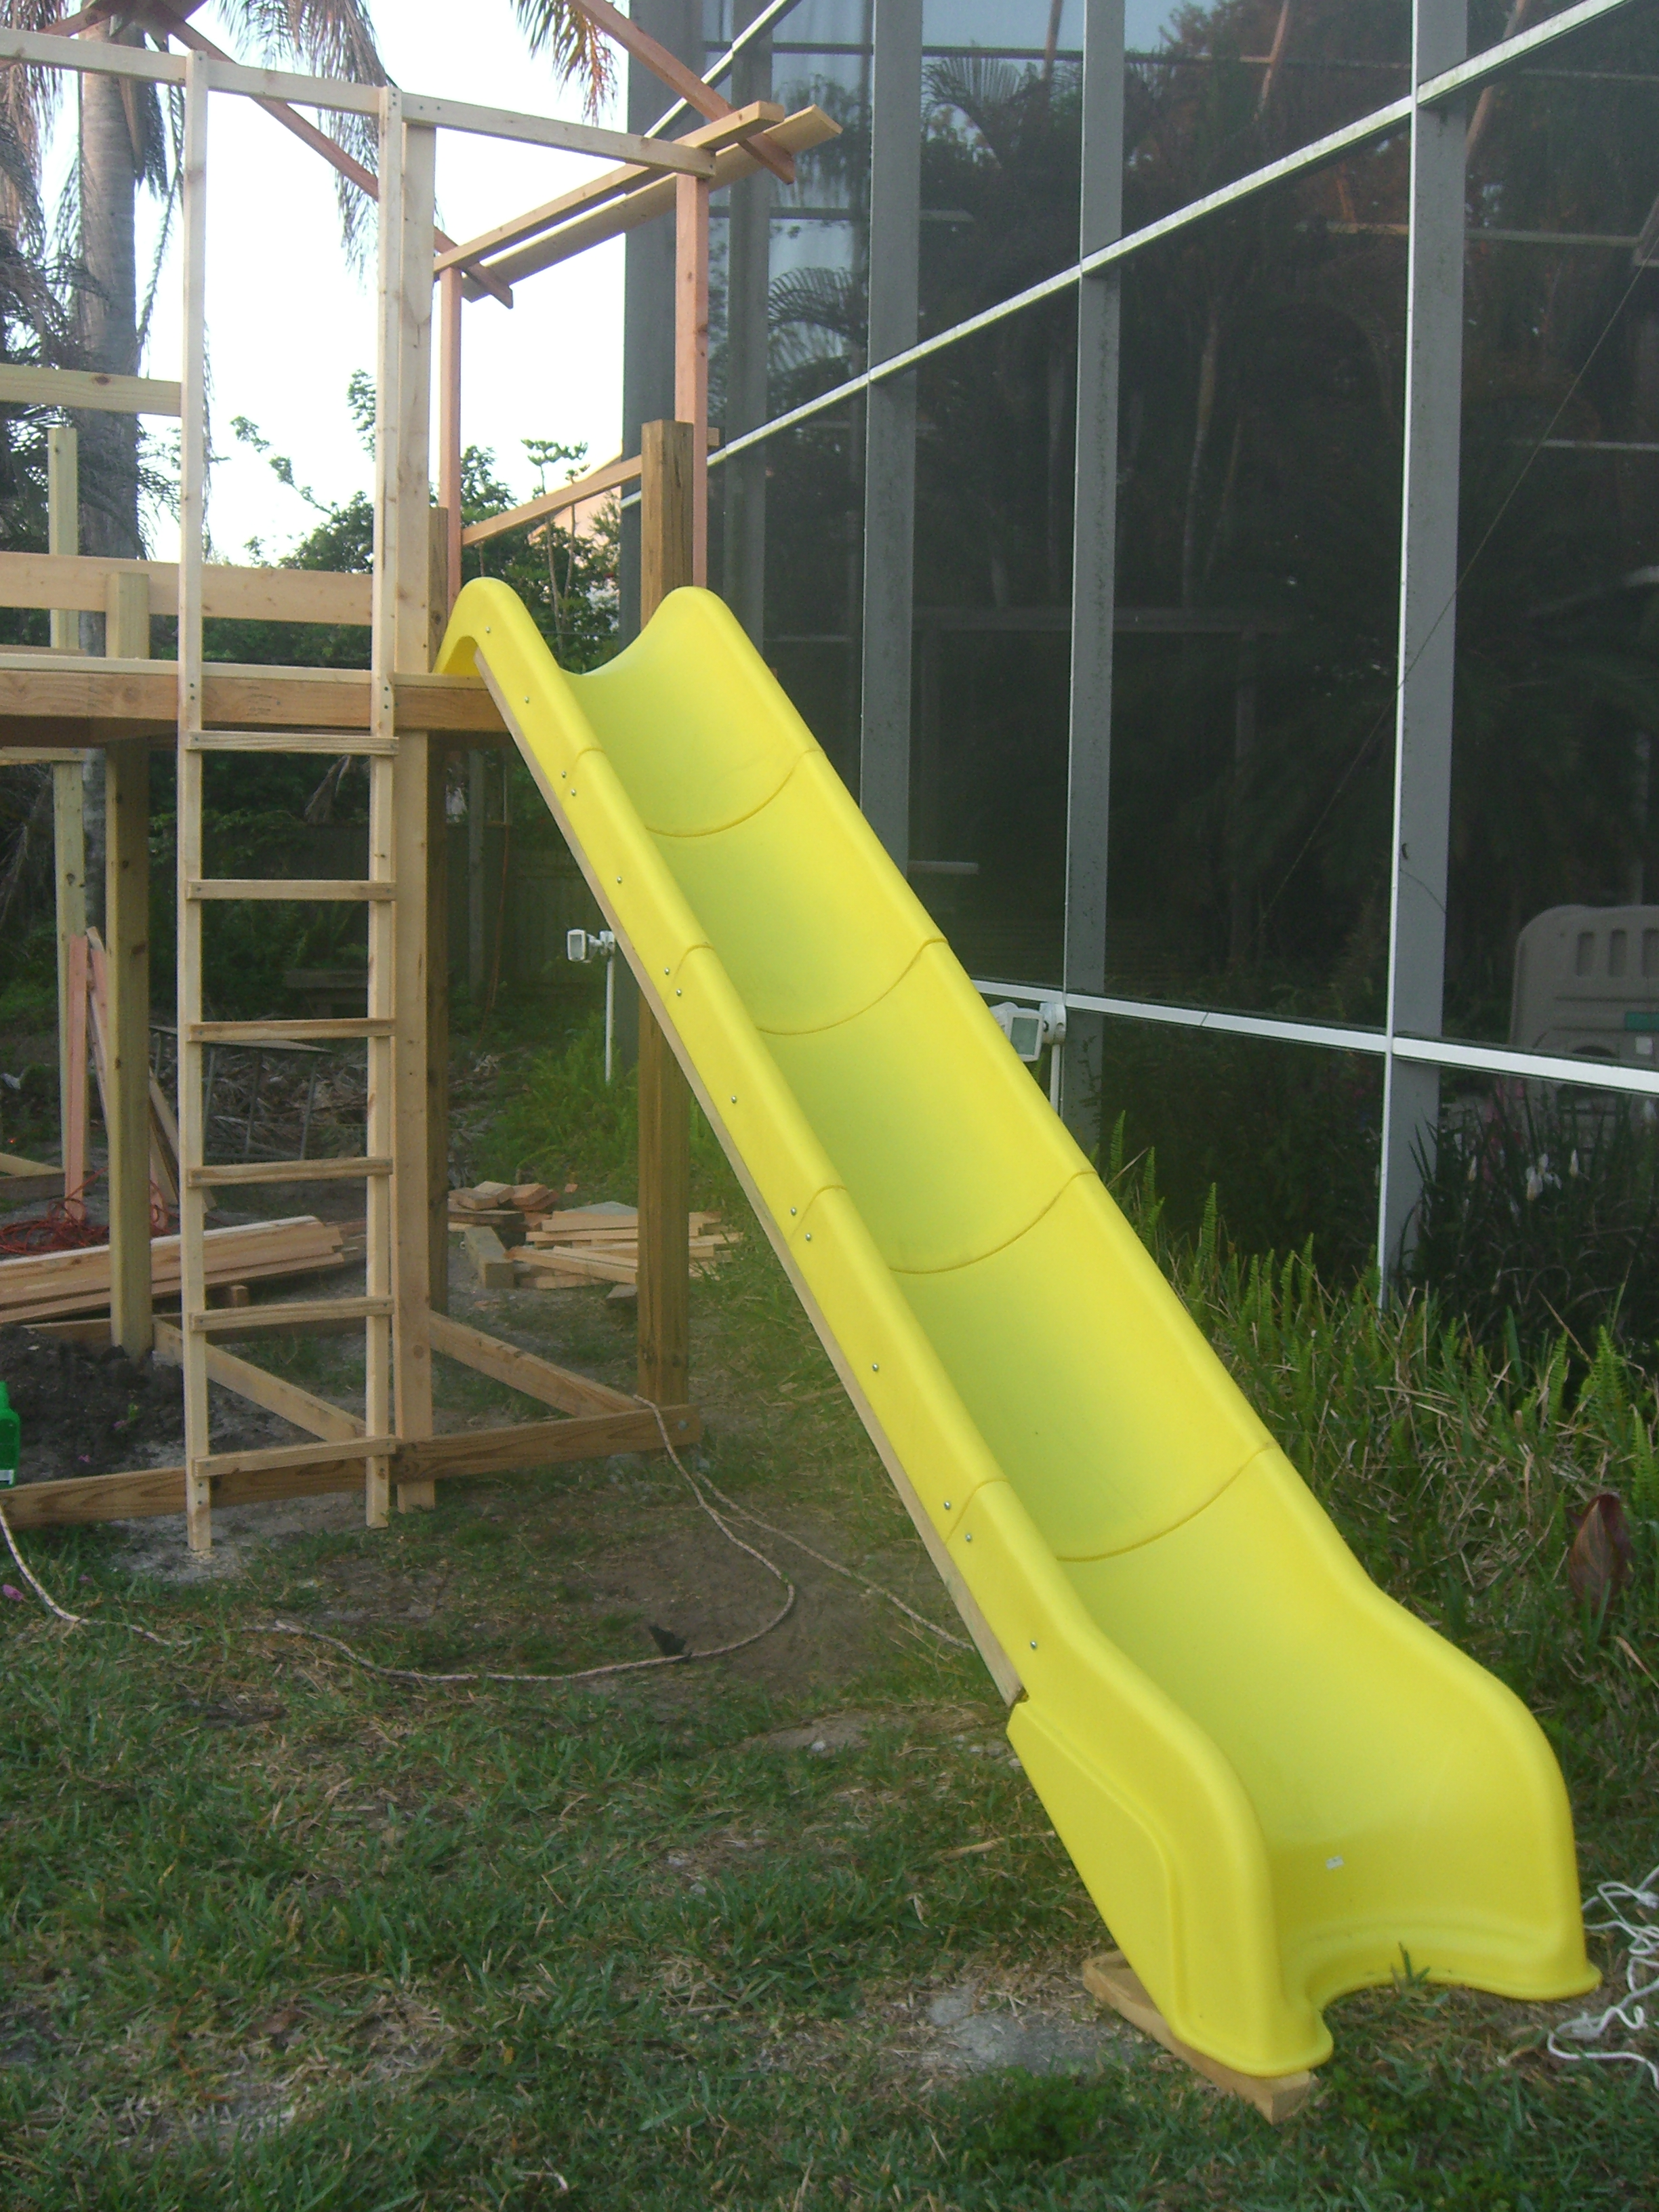 Got a good deal on the slide from an internet playset hardware supplier. It was slightly 'damaged'. I could find nothing wrong with it.